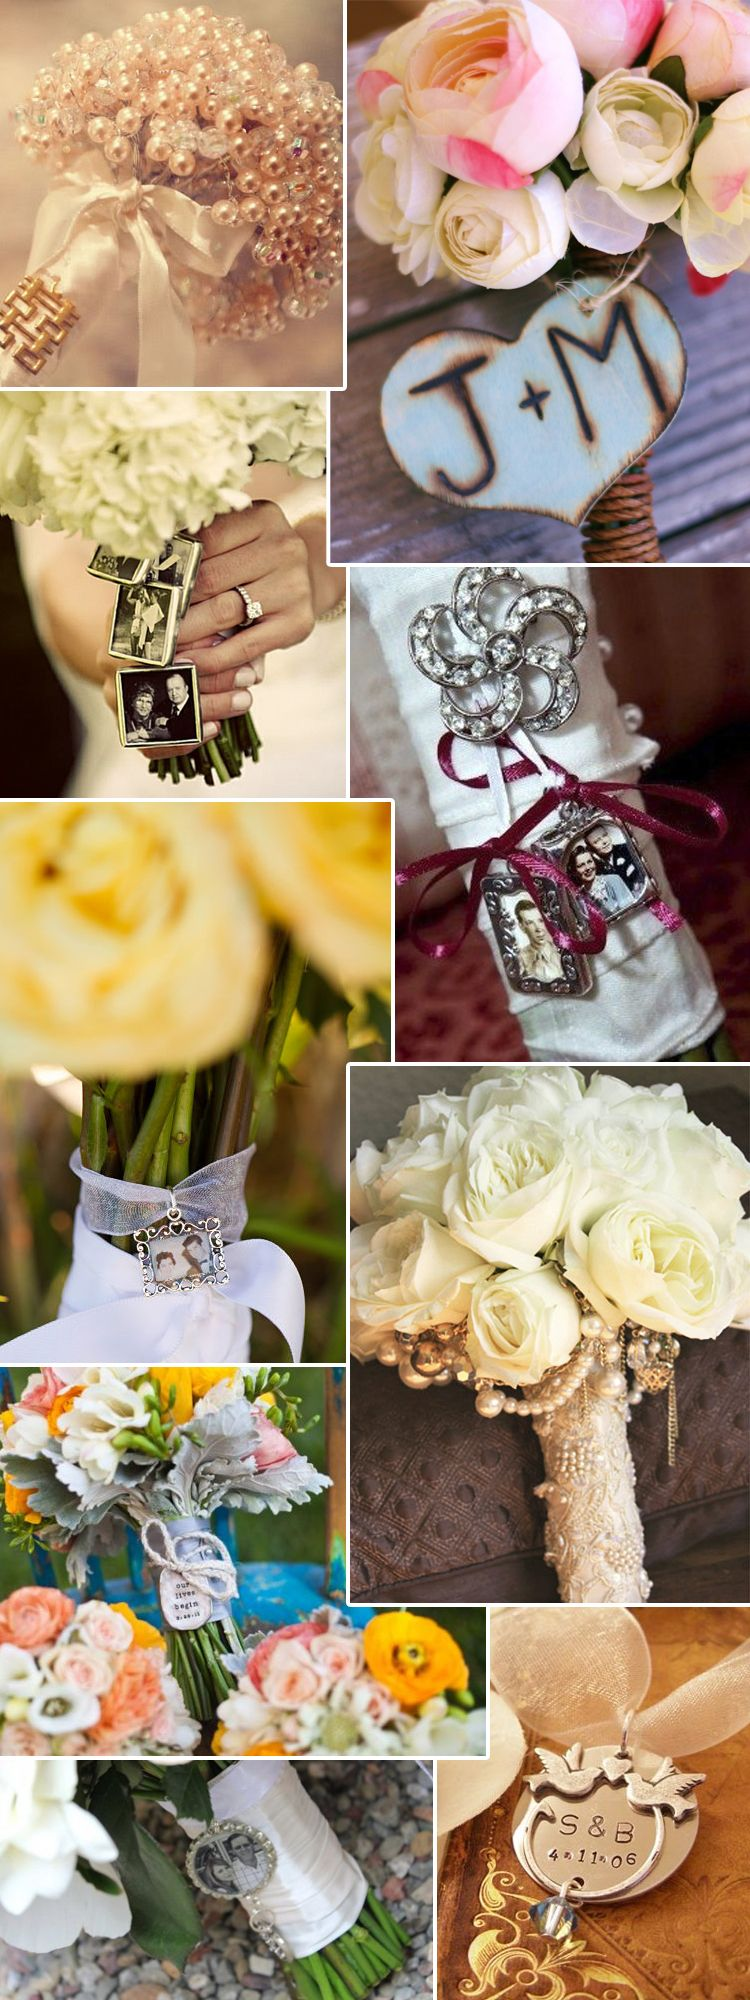 Bouquet Charms .. keep the memory of the ones you've lost close to your heart during the wedding ceremony